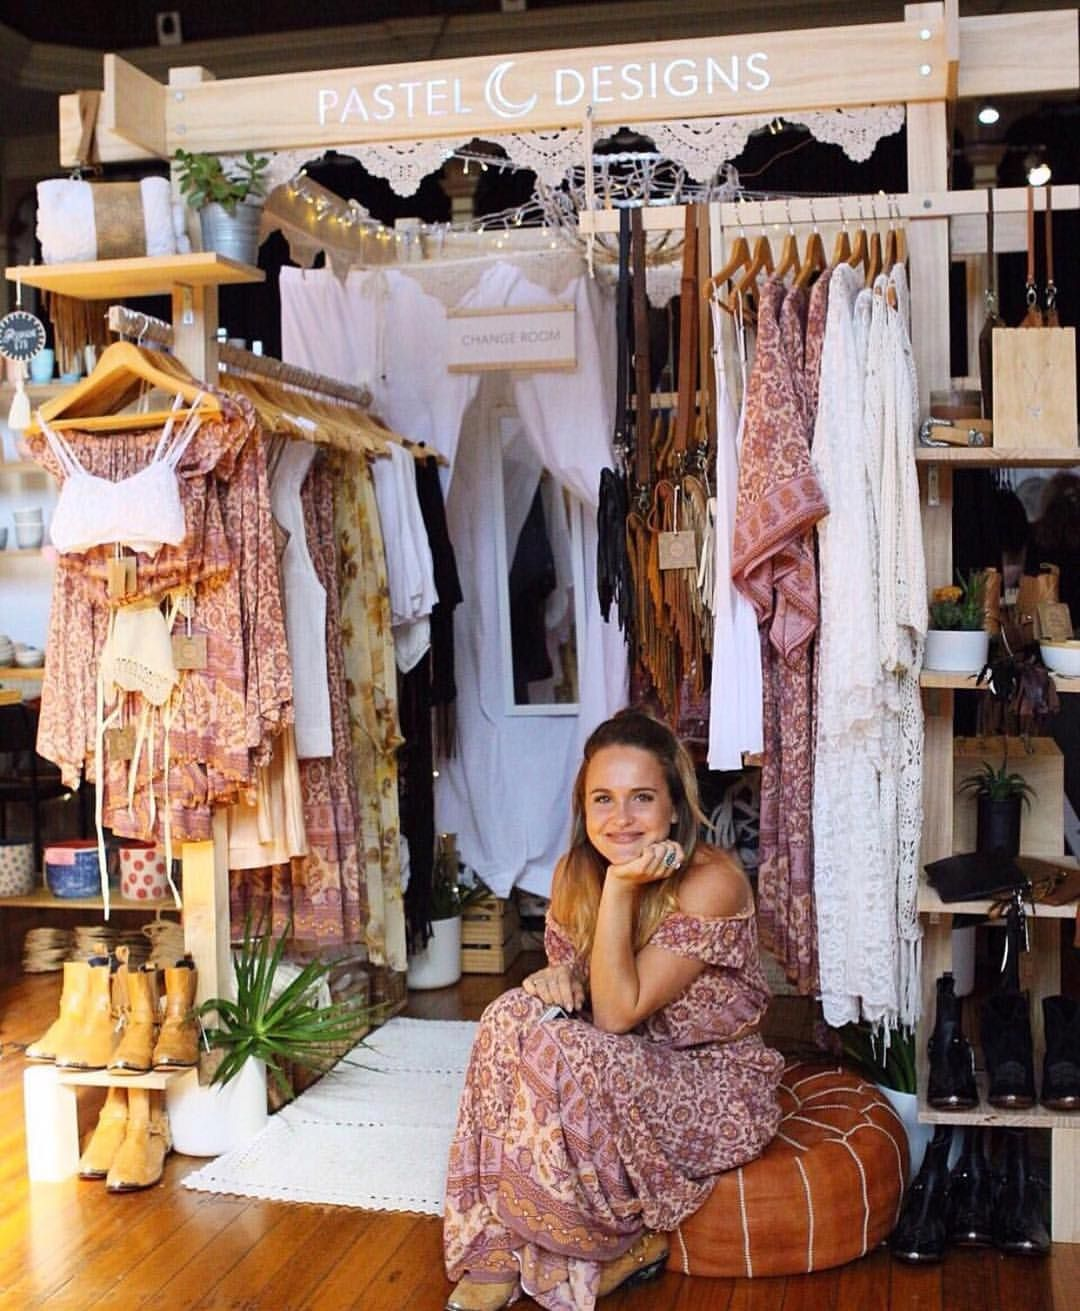 How Gorgeous Is This Stall By Shoppasteldesigns At Finders Keepers In Brisbane Clothing Booth Display Booth Display Clothing Displays